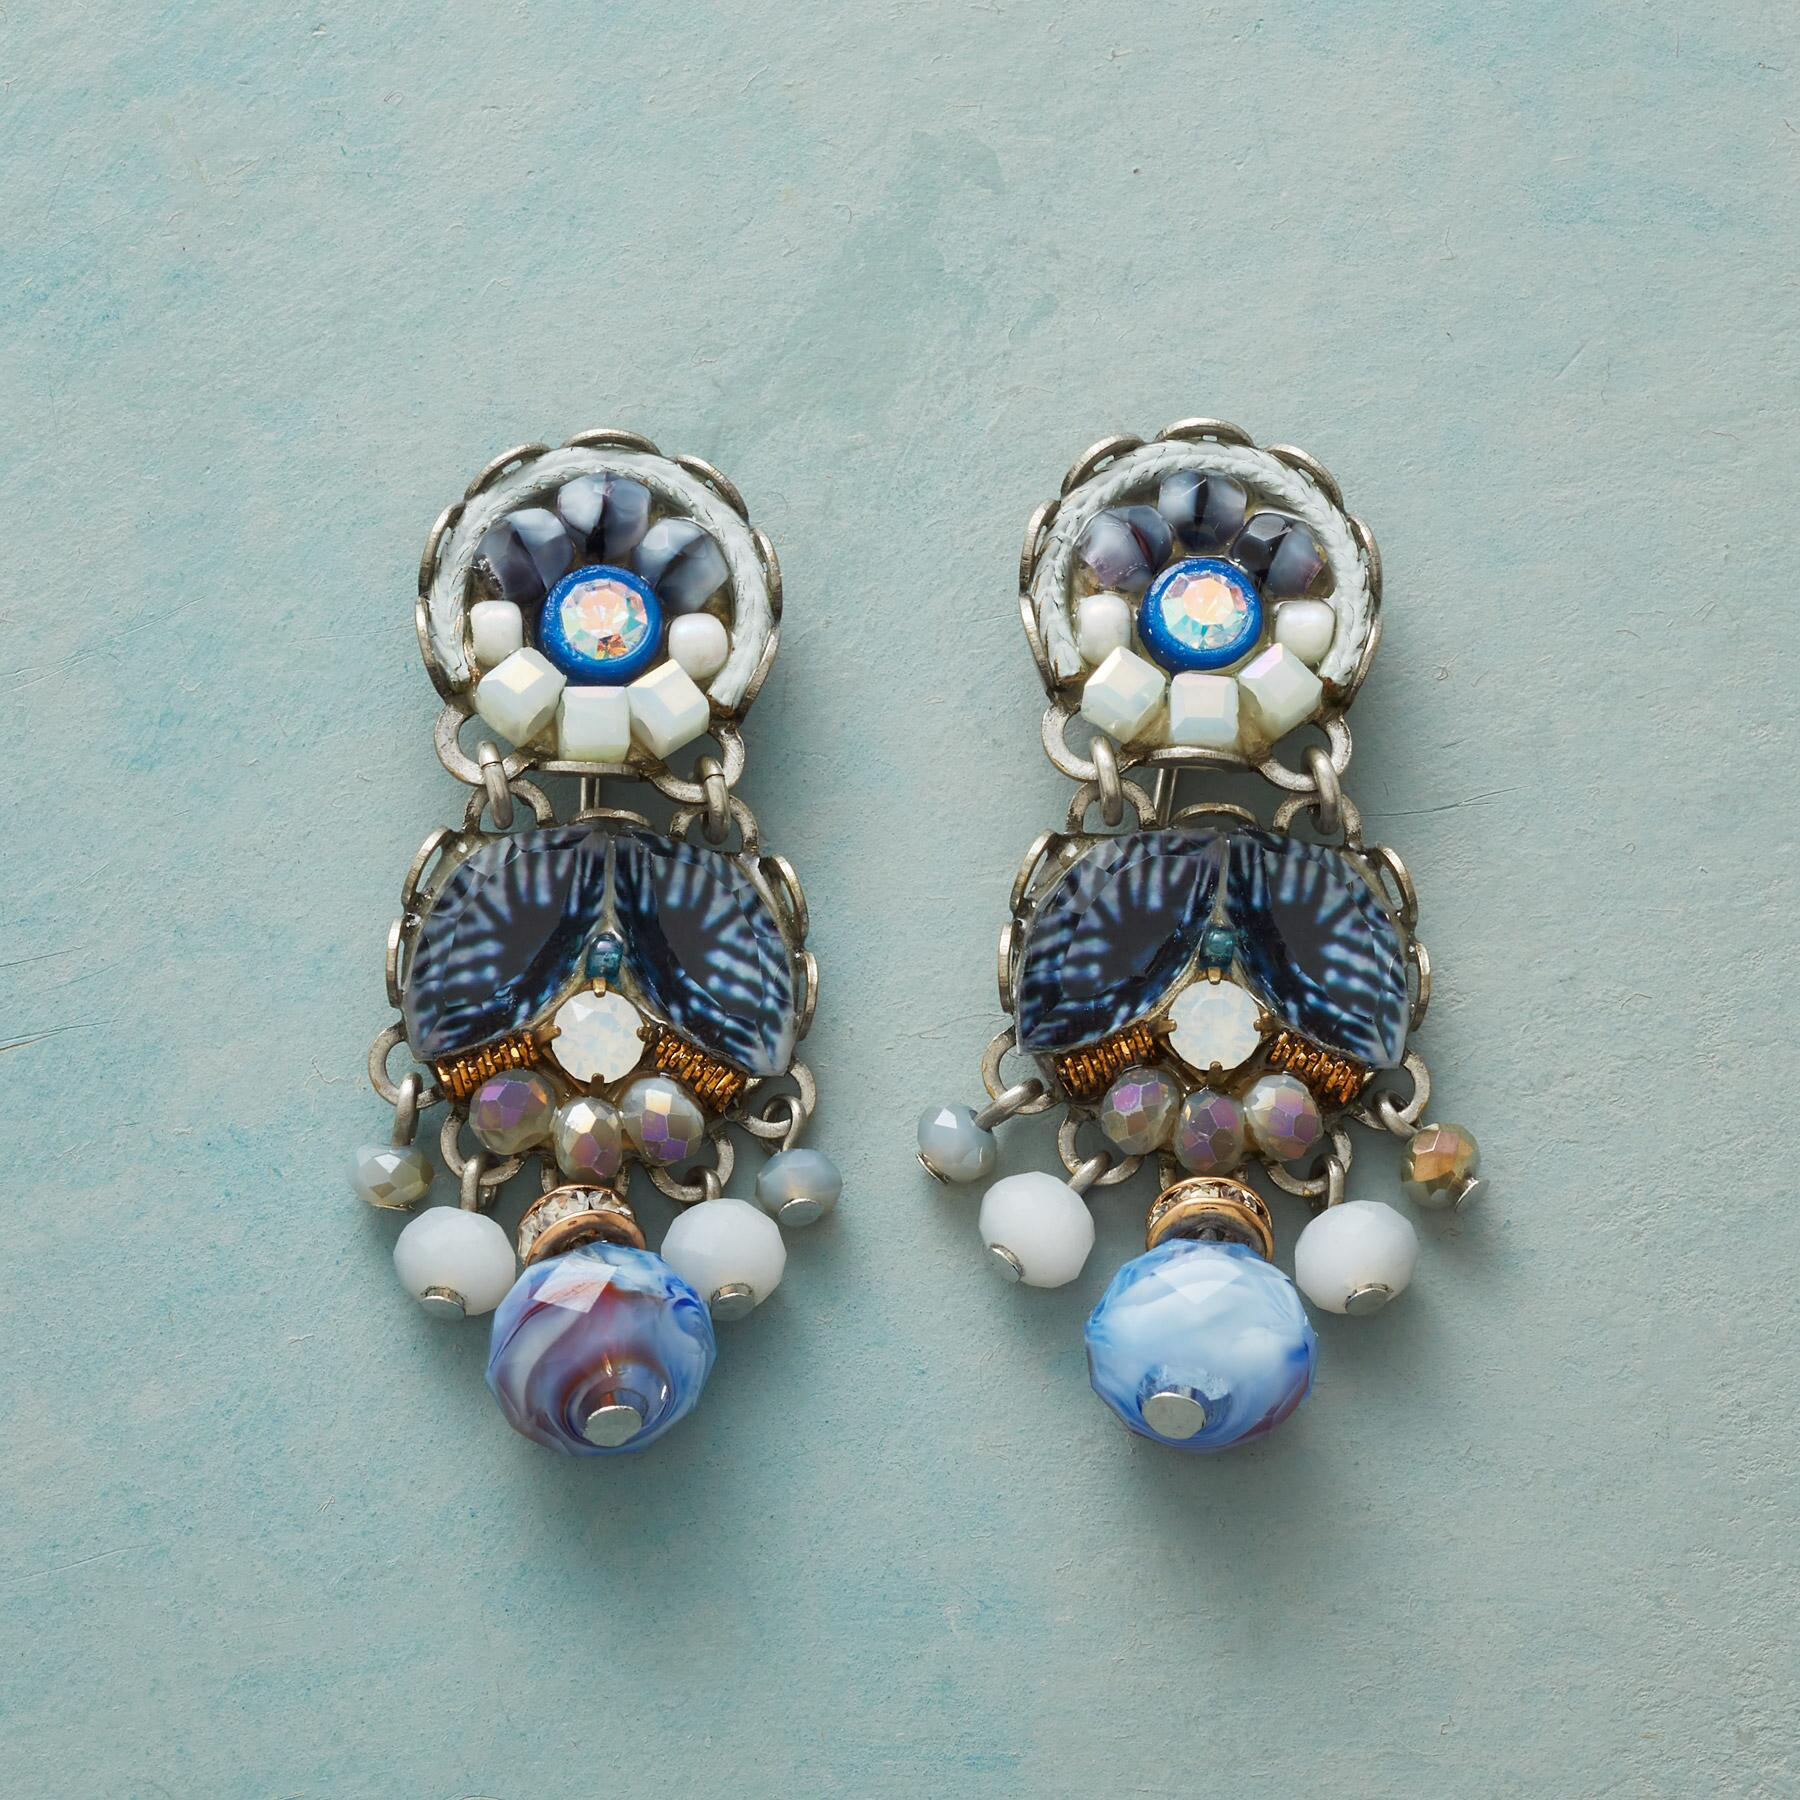 CHINA BLUE EARRINGS: View 1